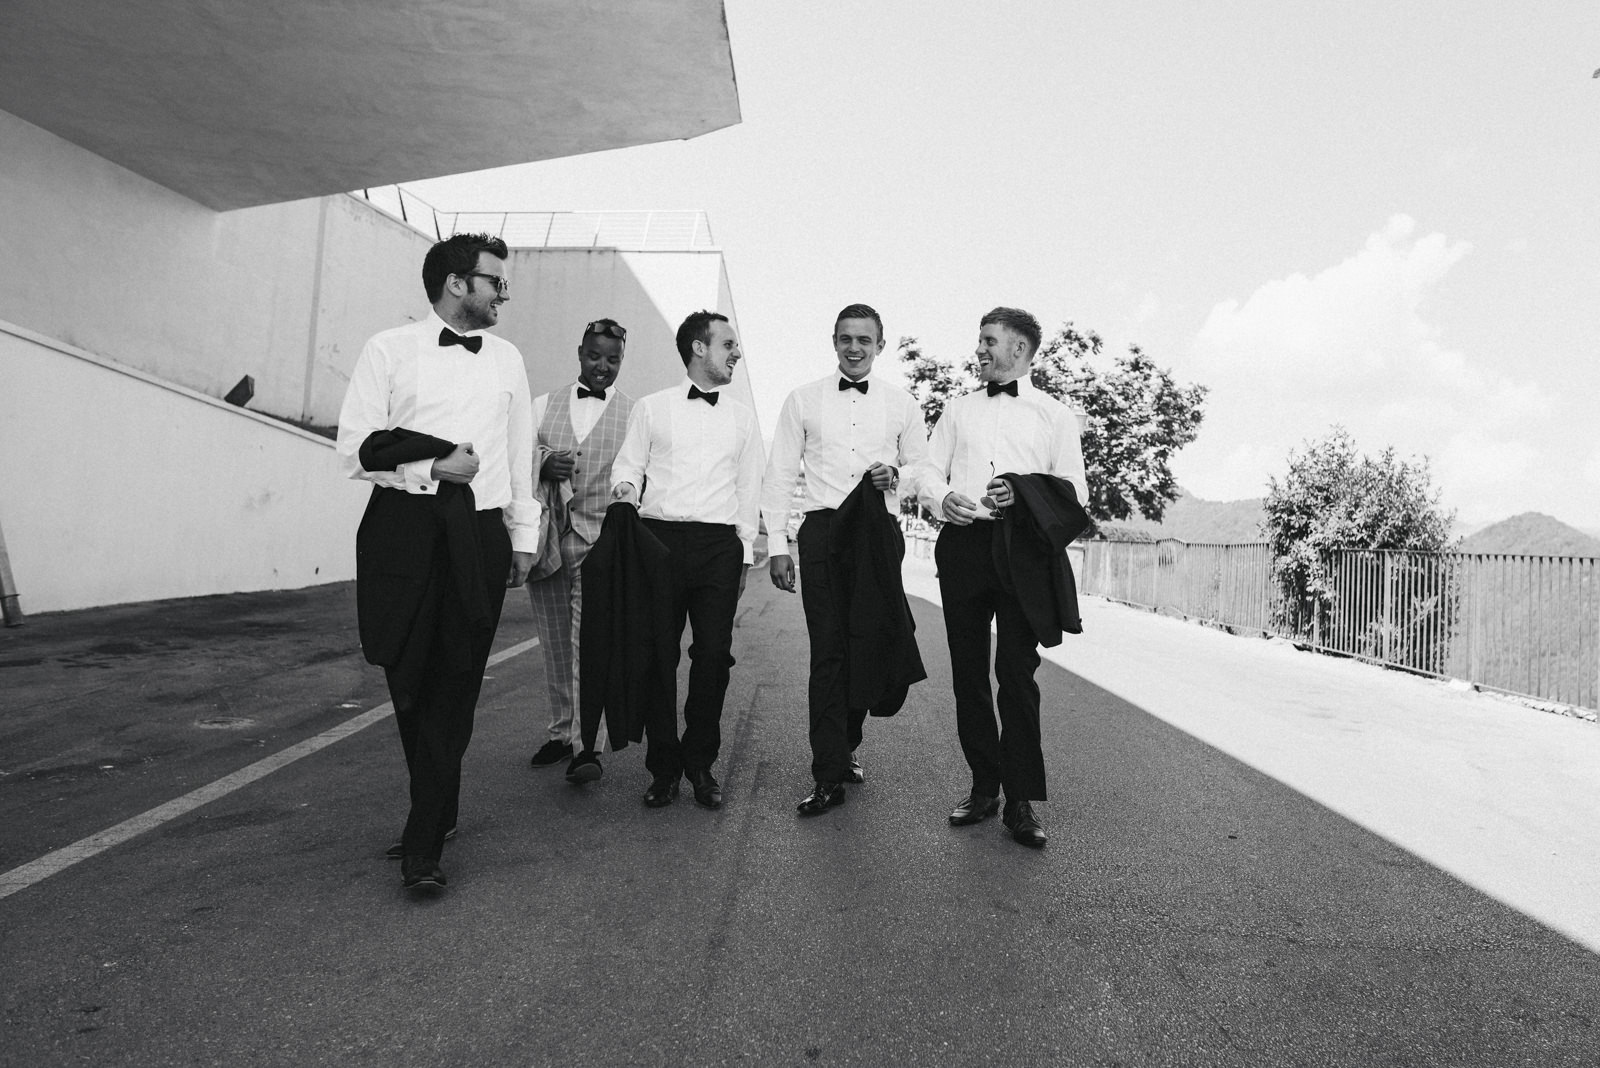 the groom walking with his best men in black and white